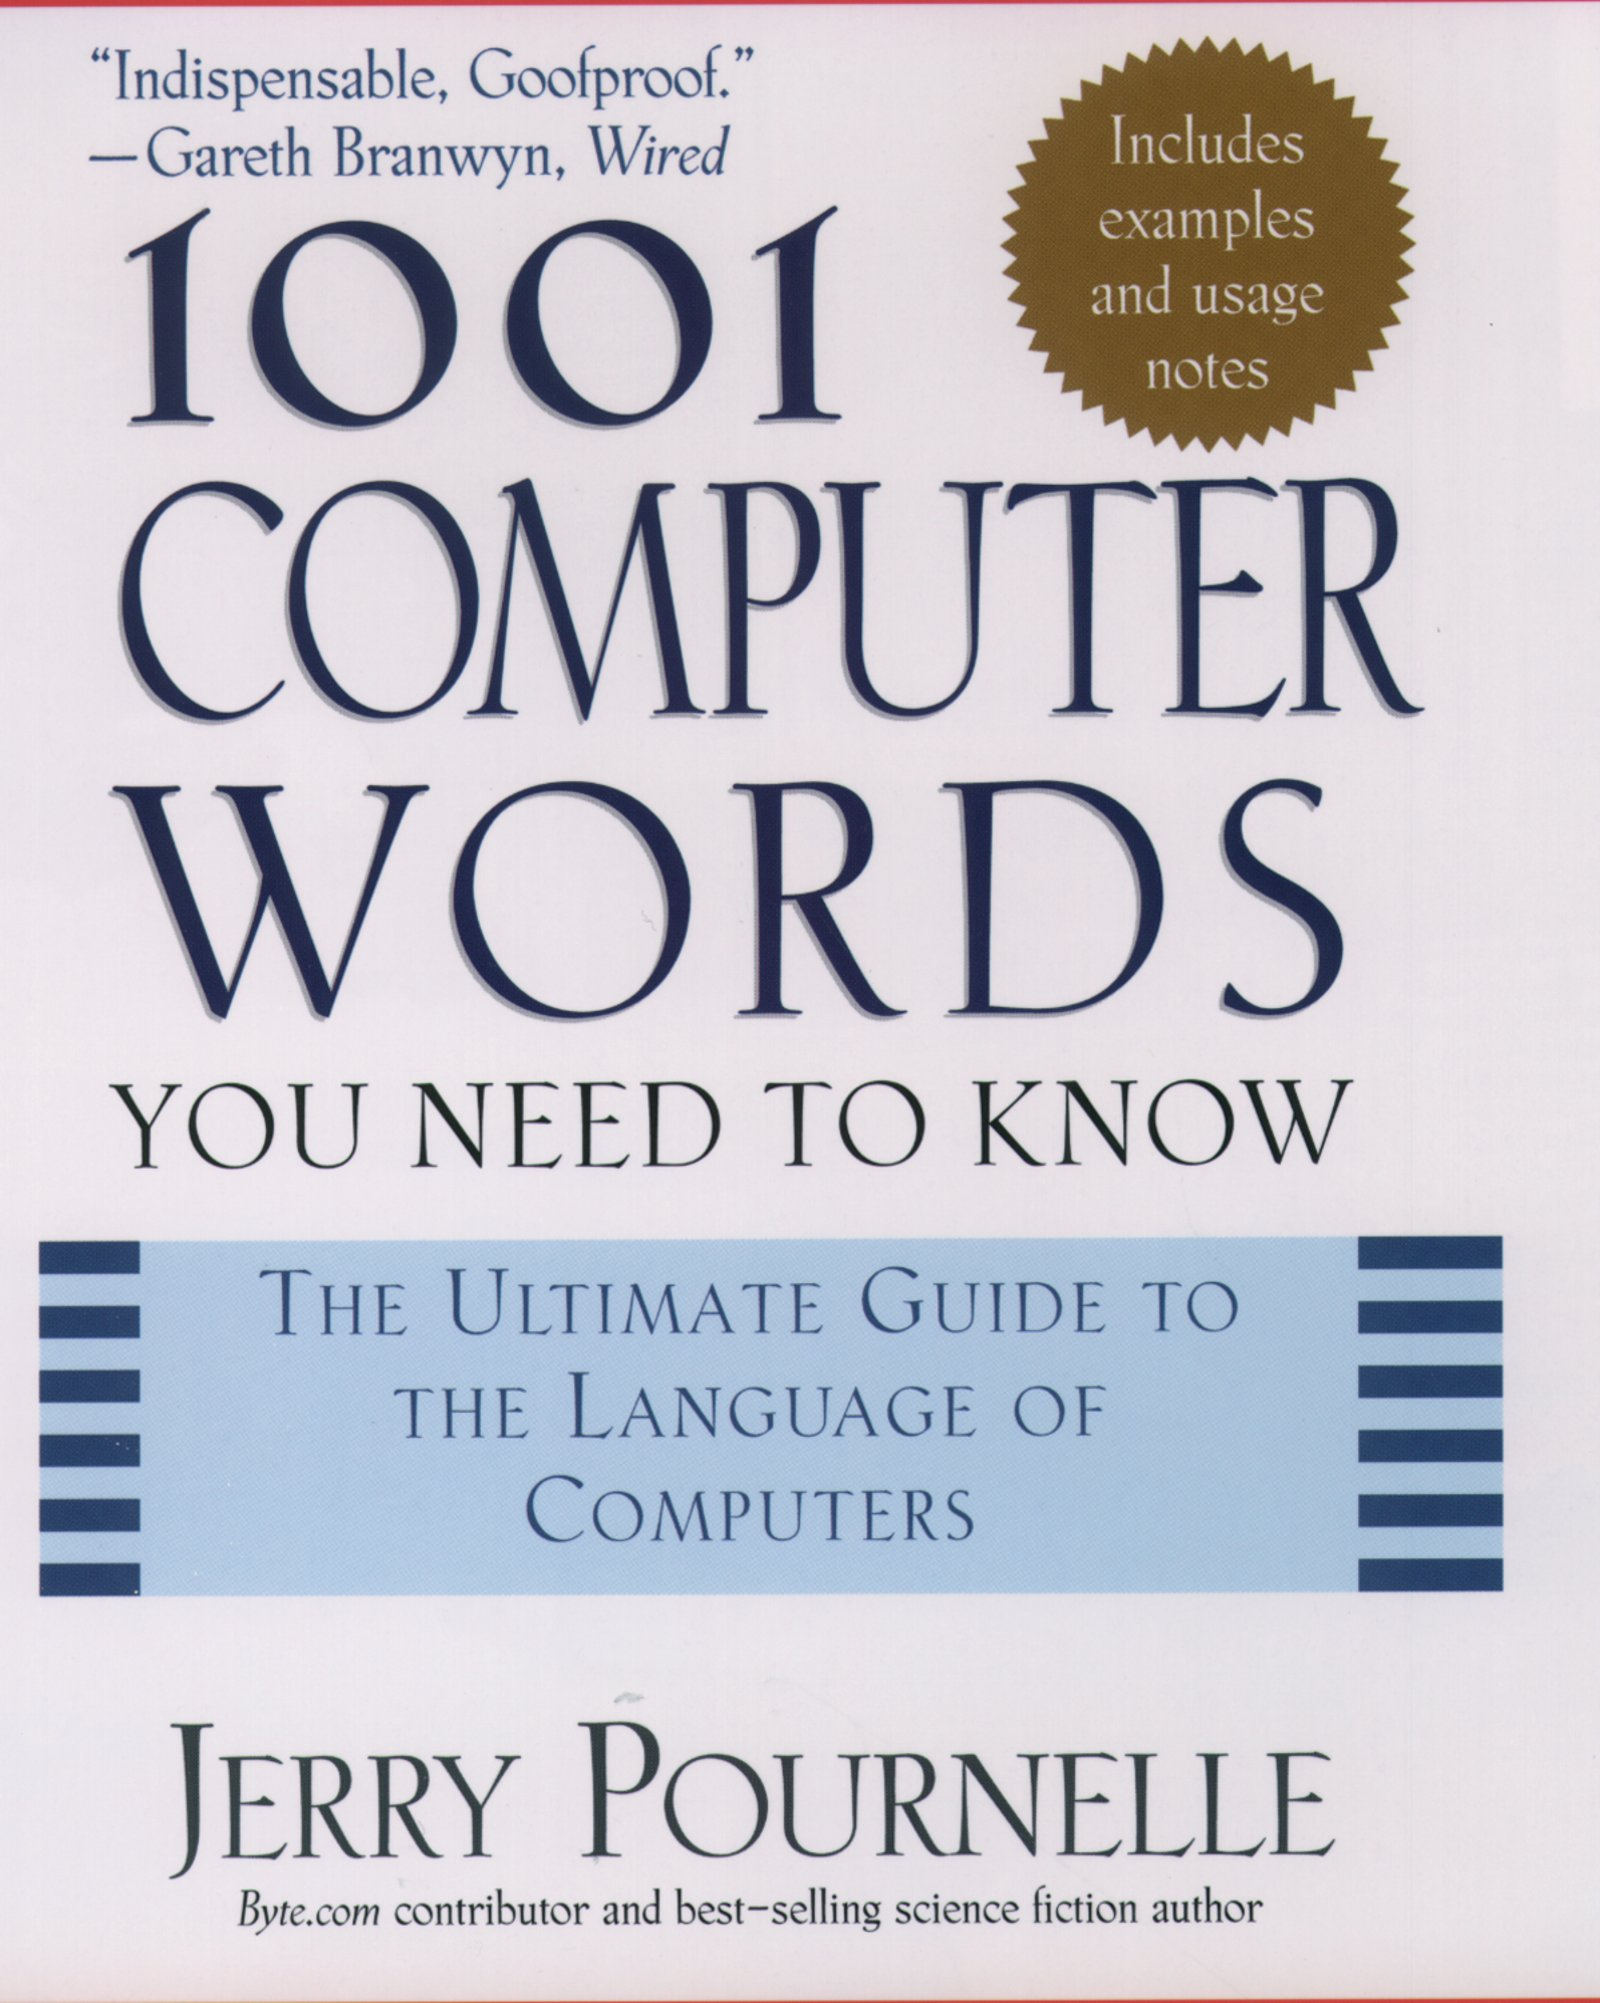 1001 Computer Words You Need to Know$